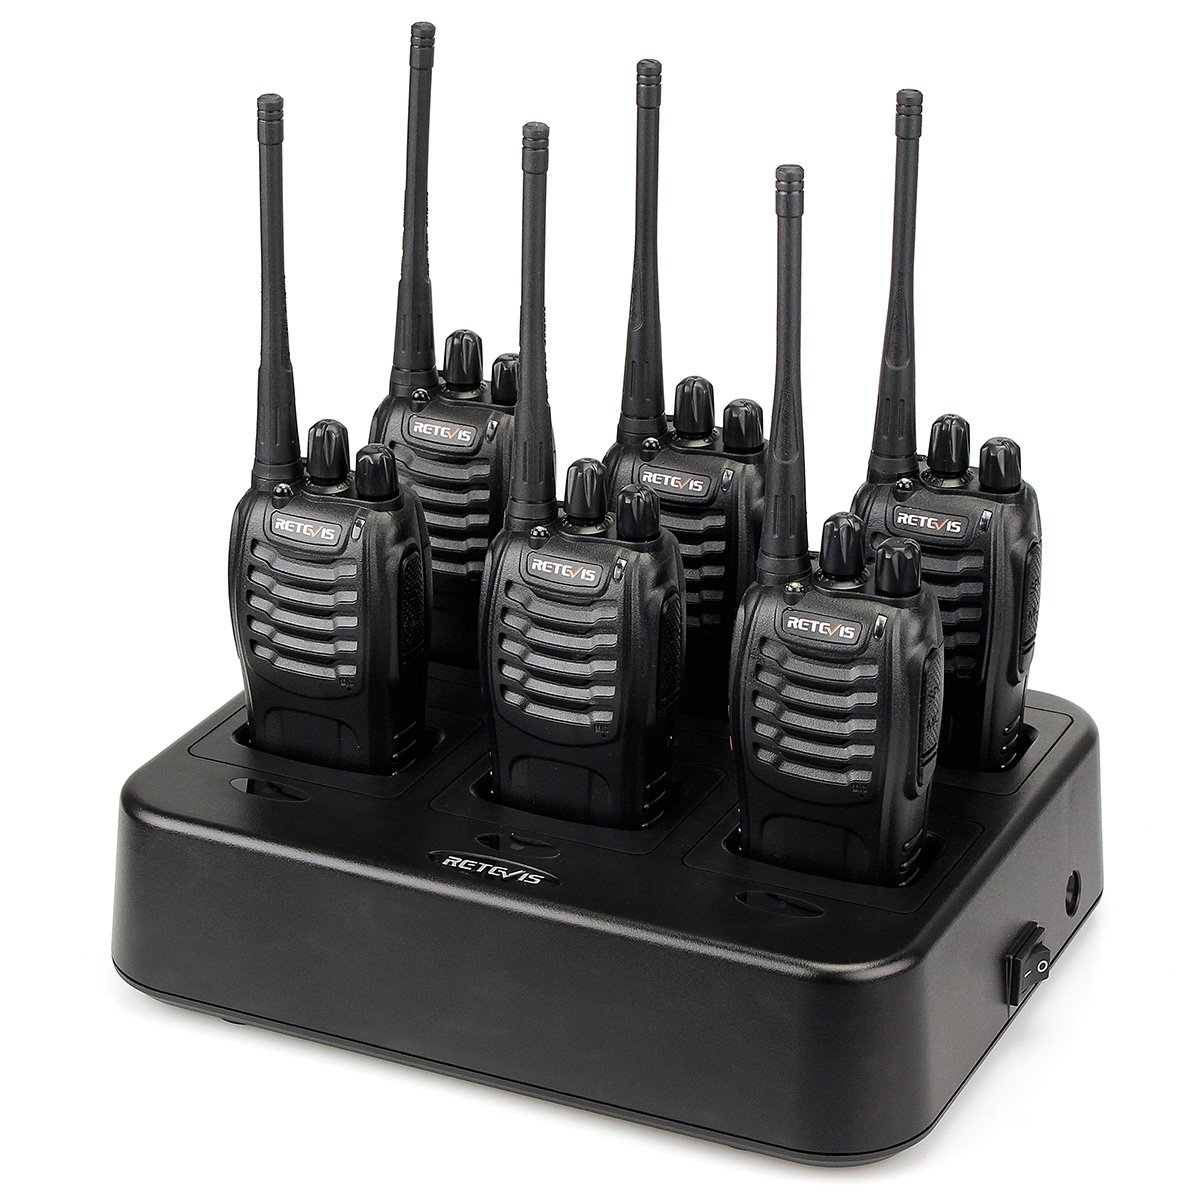 6 Pack Retevis H-777 Walkie Talkies Rechargeable 16 CH UHF Single Band Flashlight 2 Way Radios with 6-Way Multi Unit Charger A0144A*5+J0012A-US